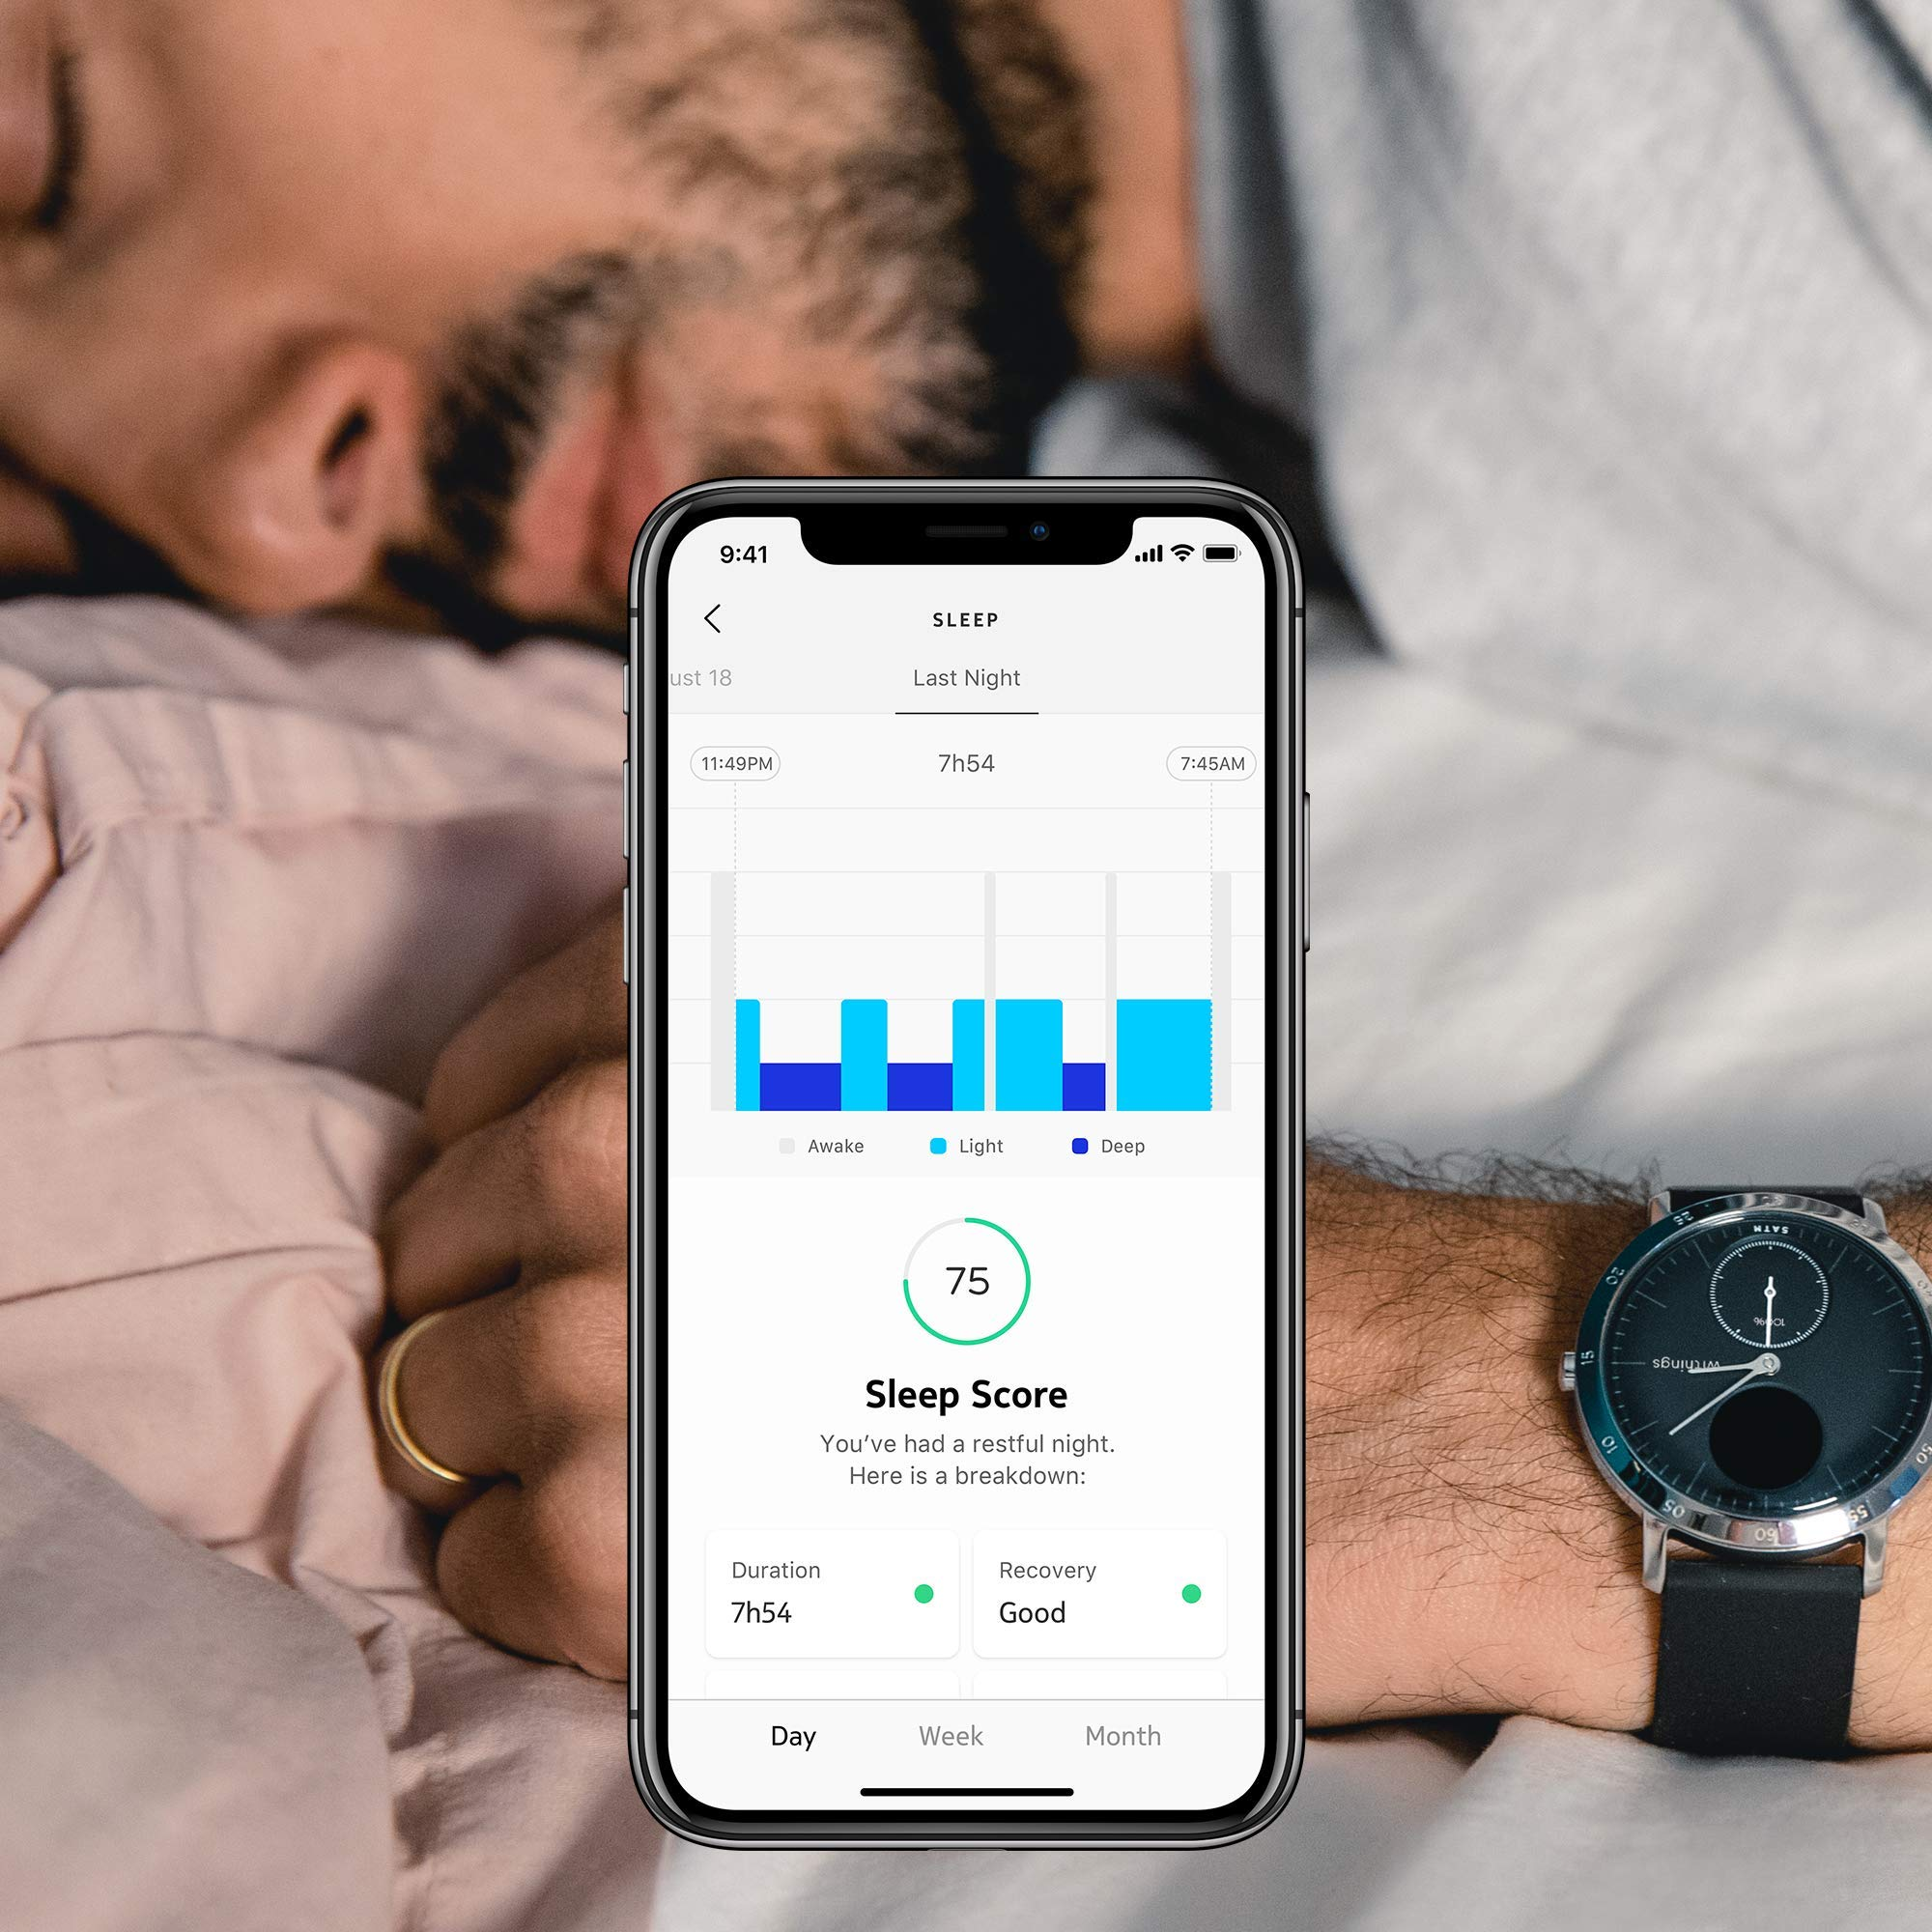 Withings / Nokia | Steel HR Hybrid Smartwatch - Activity Tracker with Connected GPS, Heart Rate Monitor, Sleep Monitor, Water Resistant Smart Watch with 25-day battery life (Renewed) by Withings (Image #5)